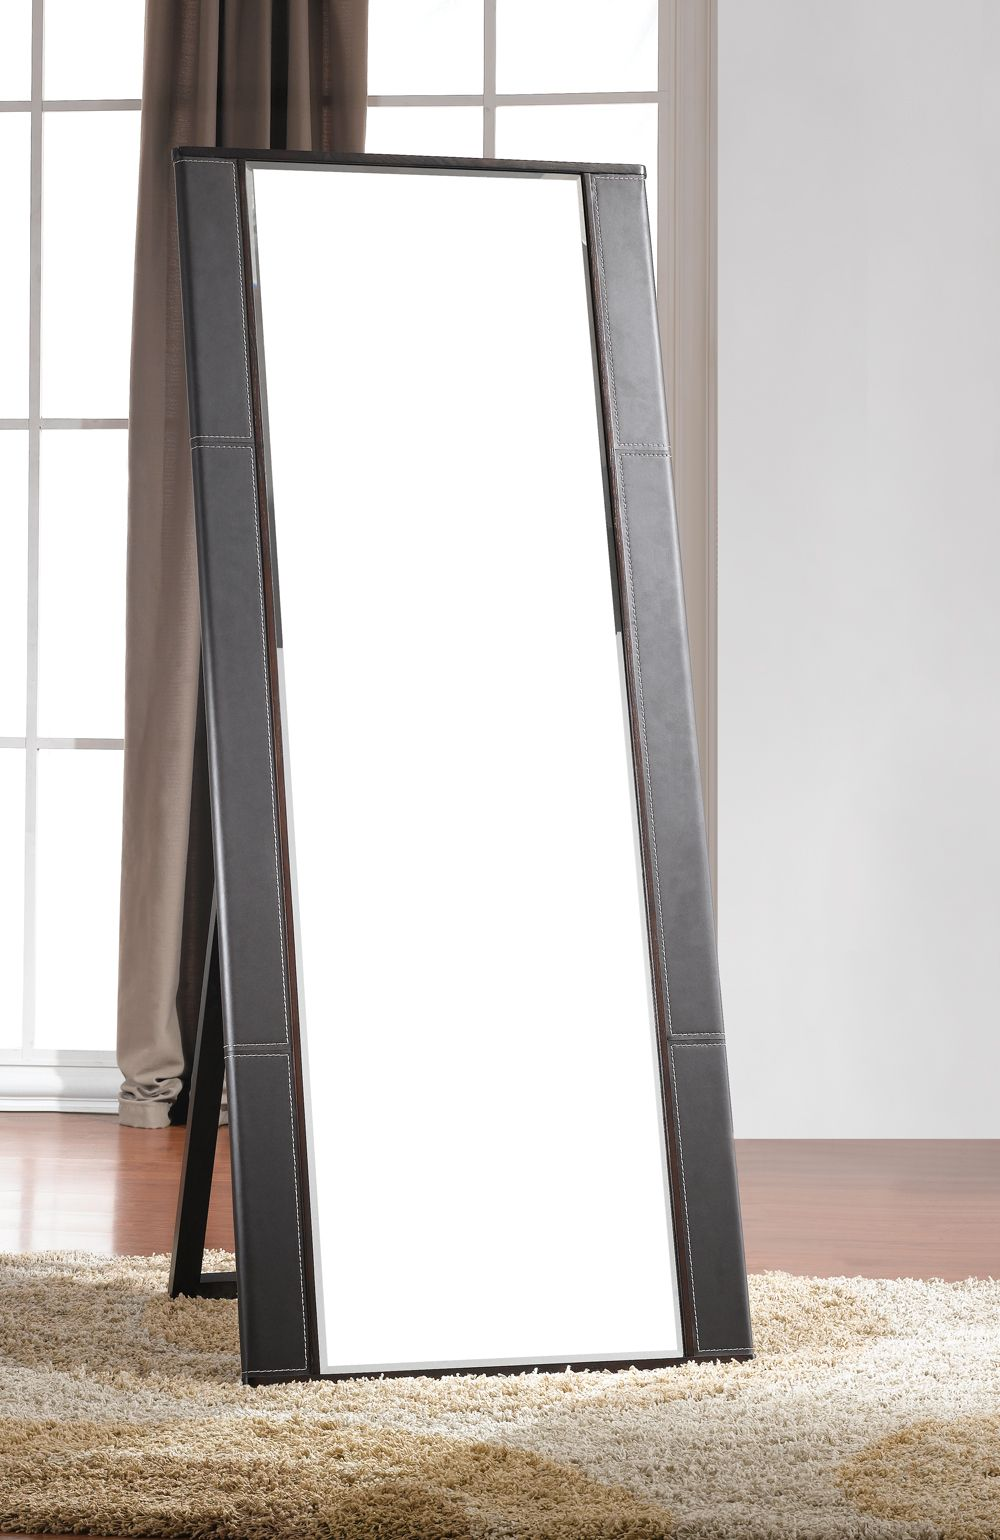 Colibri Floor Mirror The colibri Floor Mirror can be used as a stand ...